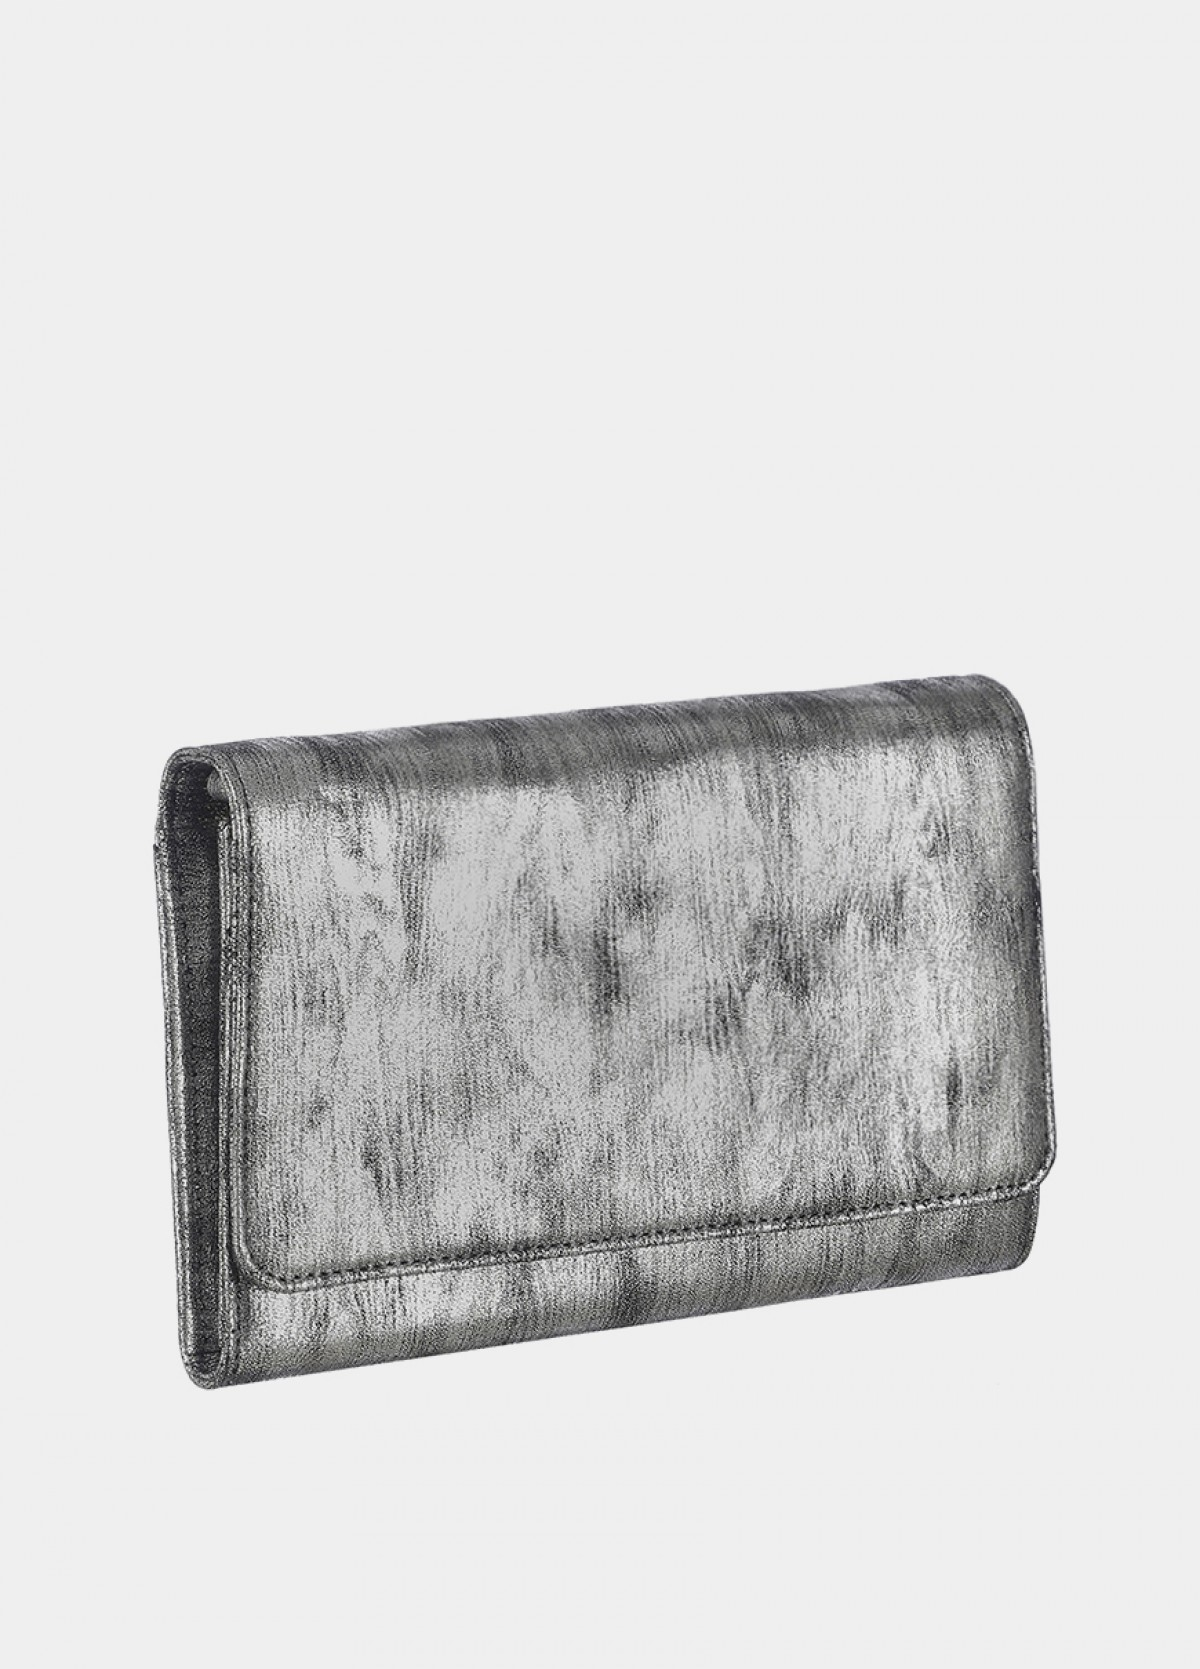 The Silver Embellished Clutch